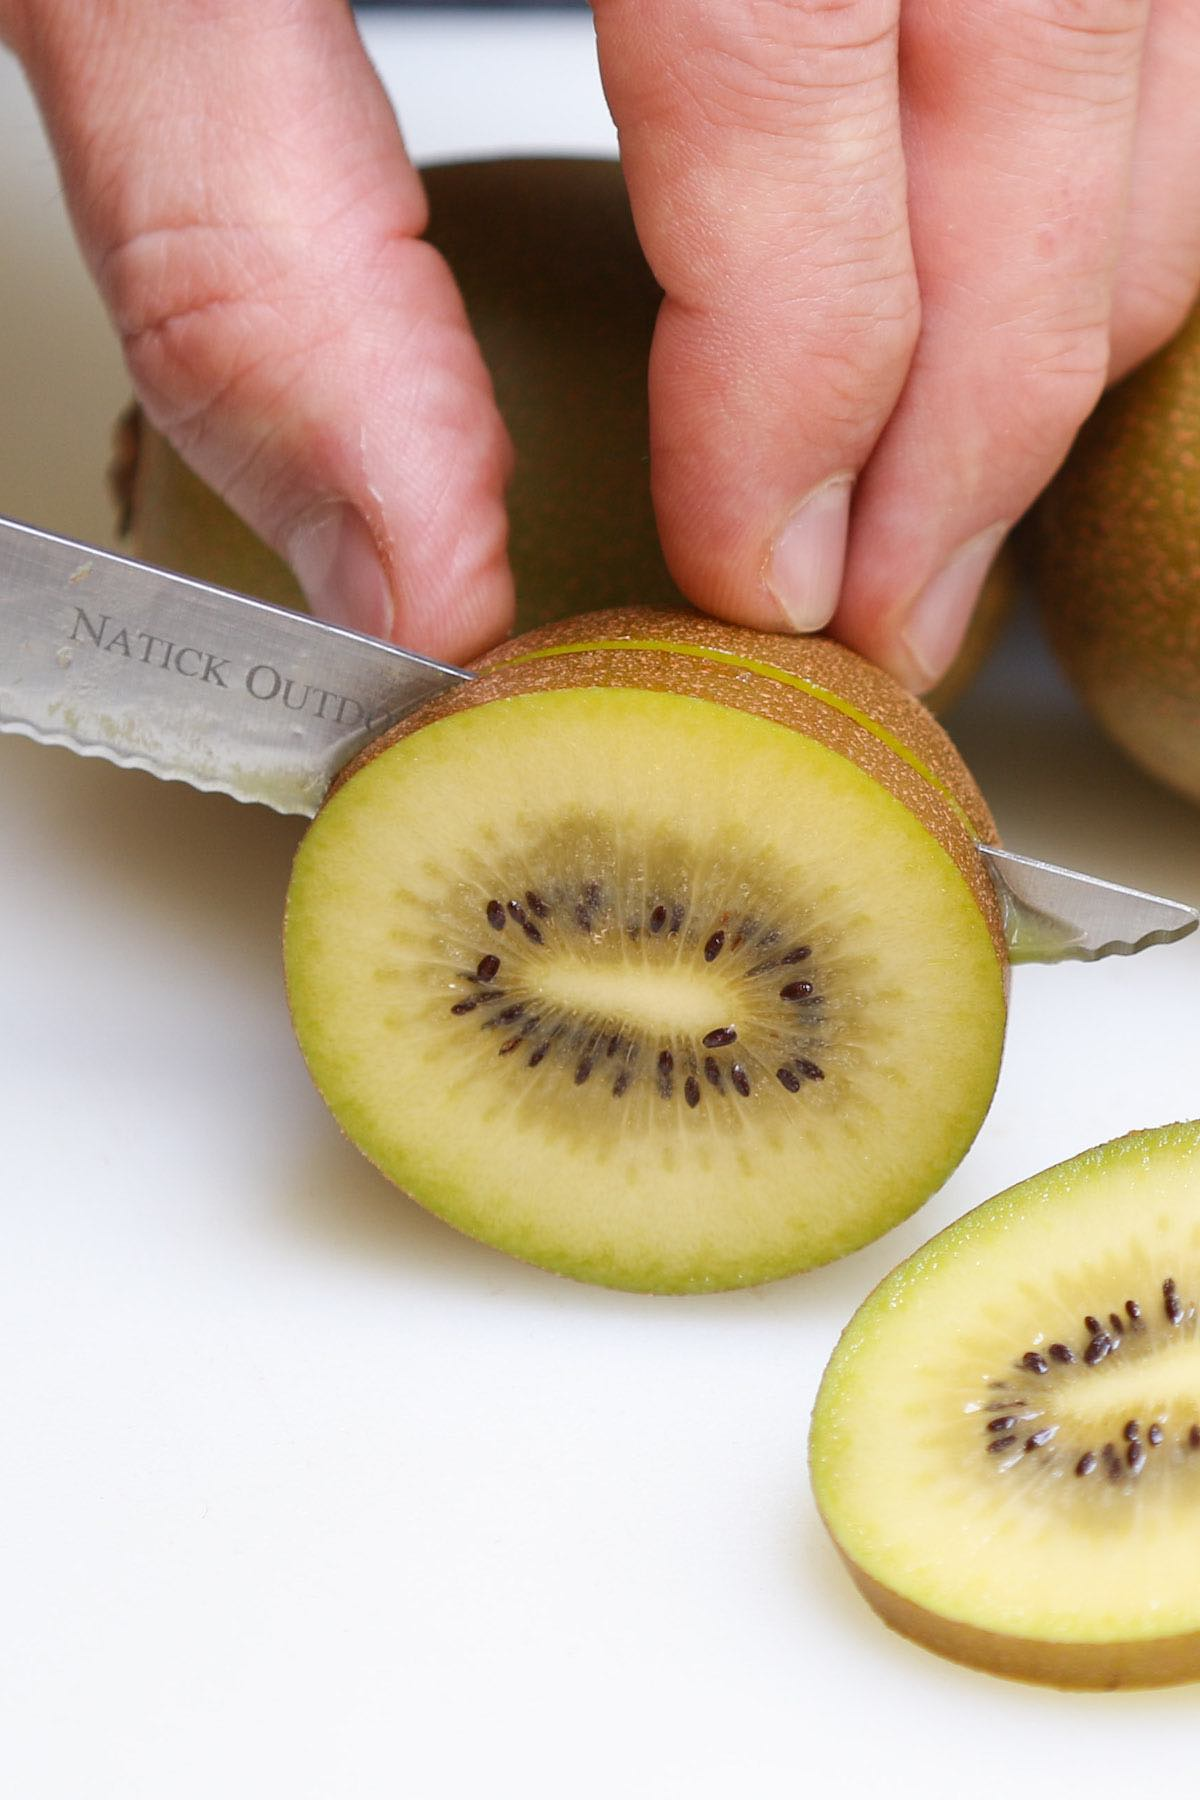 Slicing a kiwi widthwise with a paring knife while leaving the skin on